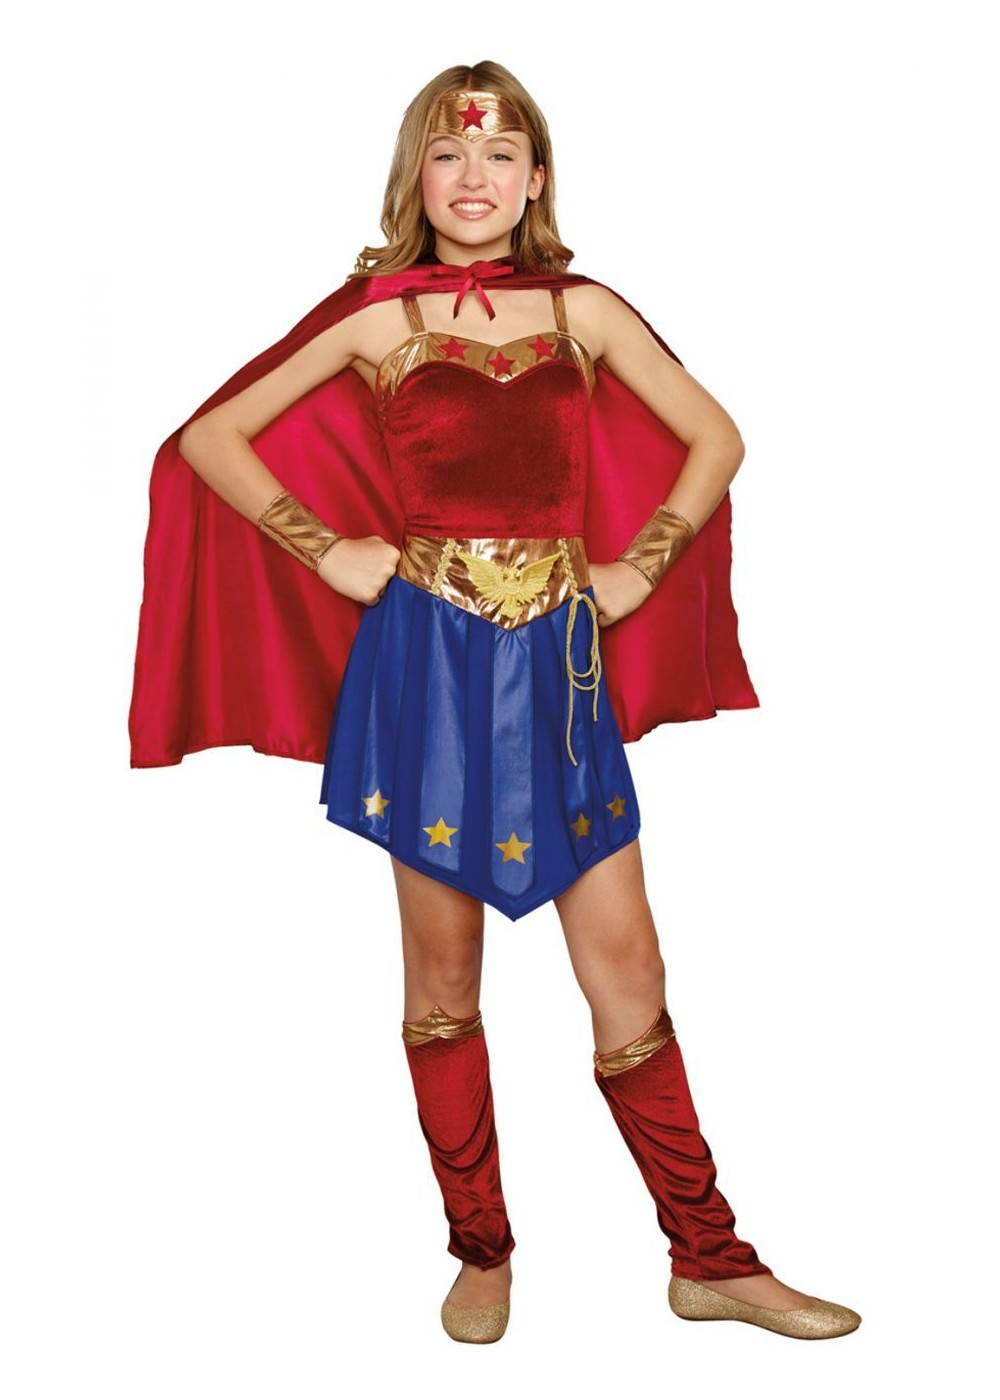 Wonder Cutie Tween Girls Superhero Costume on costume jewelry of the 1950s